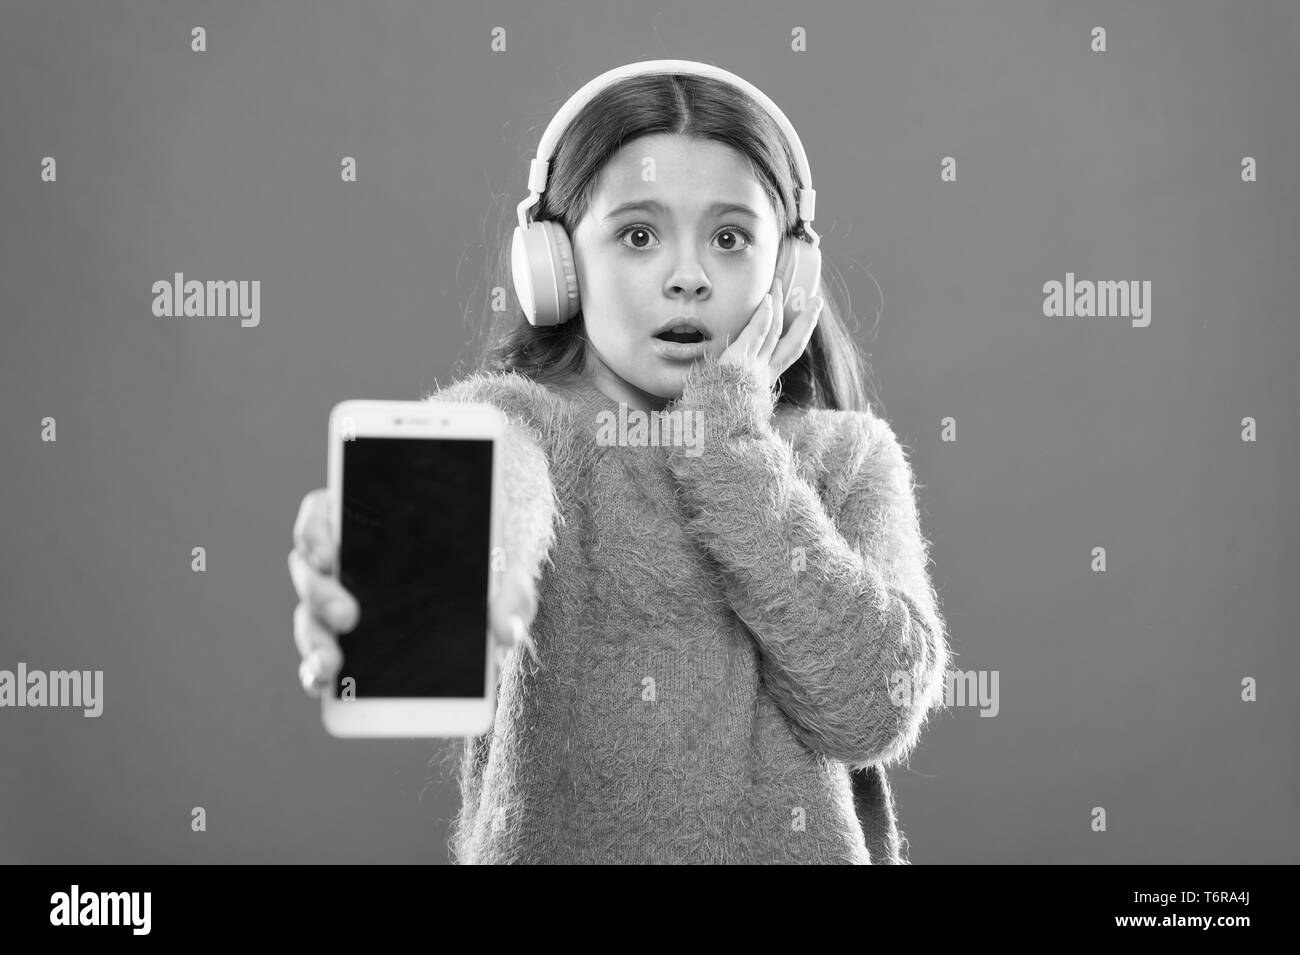 Outdated application version. Best free music apps. Listen for free. Get music account subscription. Enjoy music concept. Enjoy perfect sound. Girl child listen music modern headphones and smartphone. - Stock Image